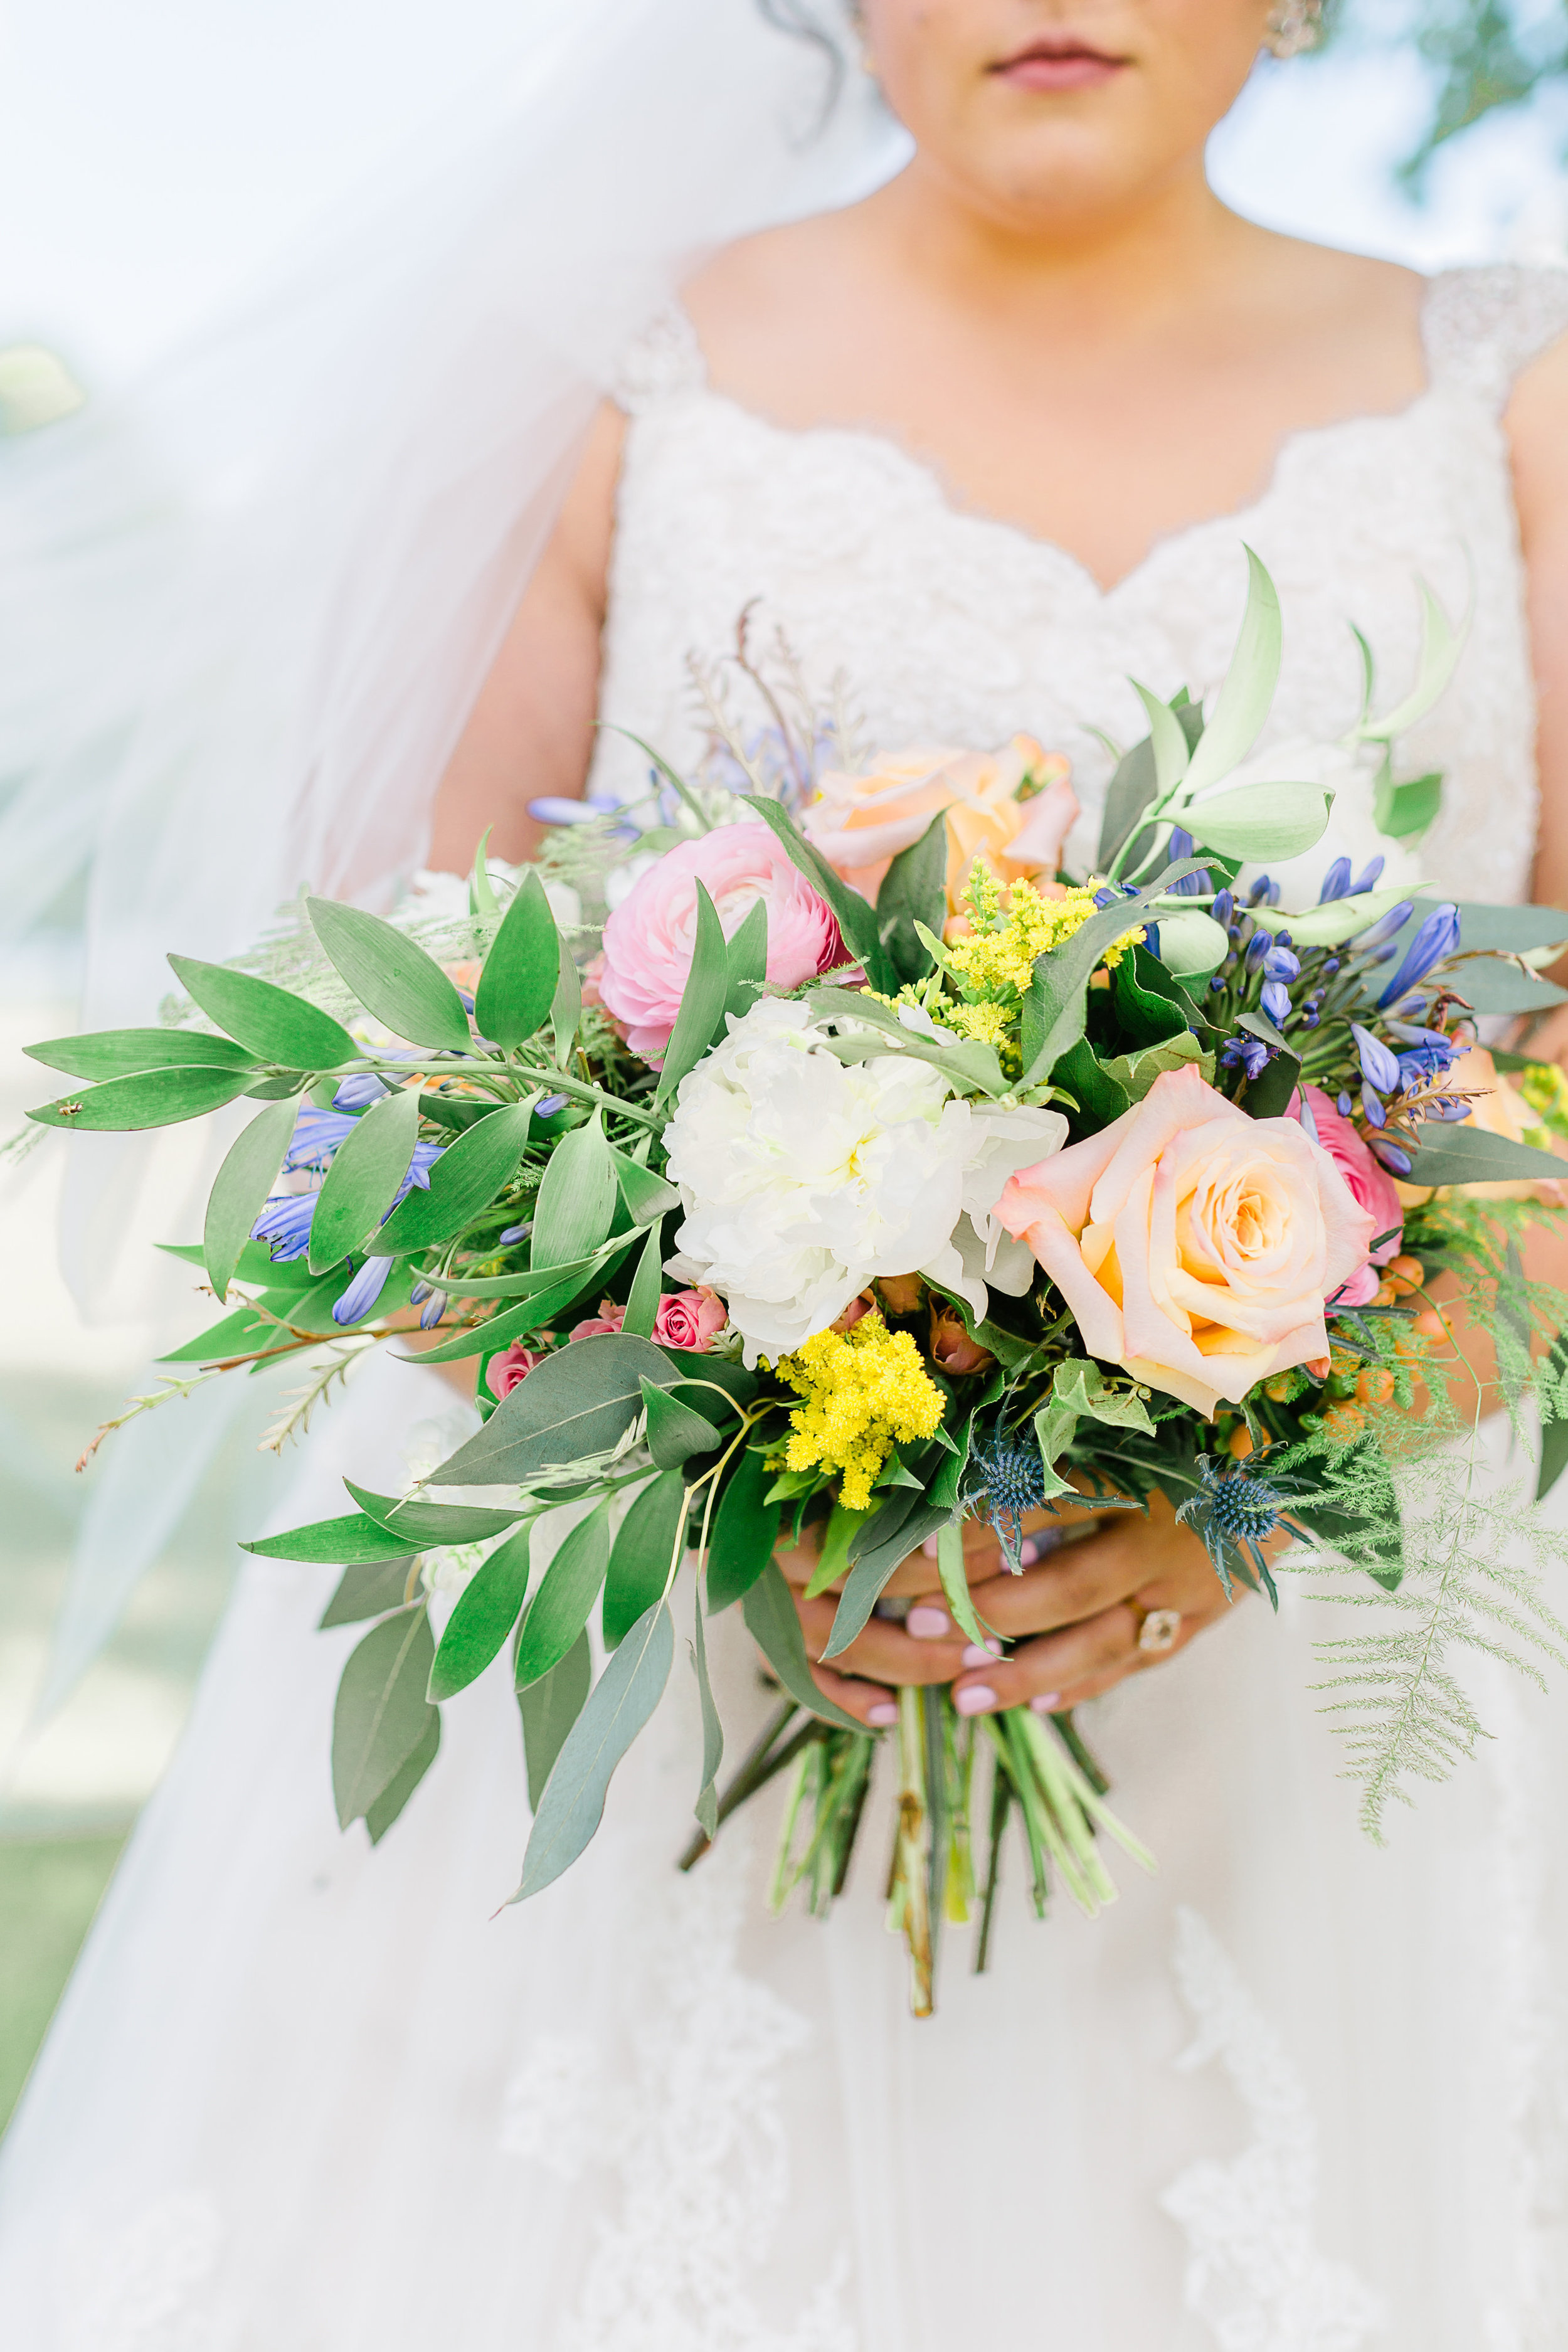 Bridal Bouquet Outdoor Wedding J.Blu Design Florist